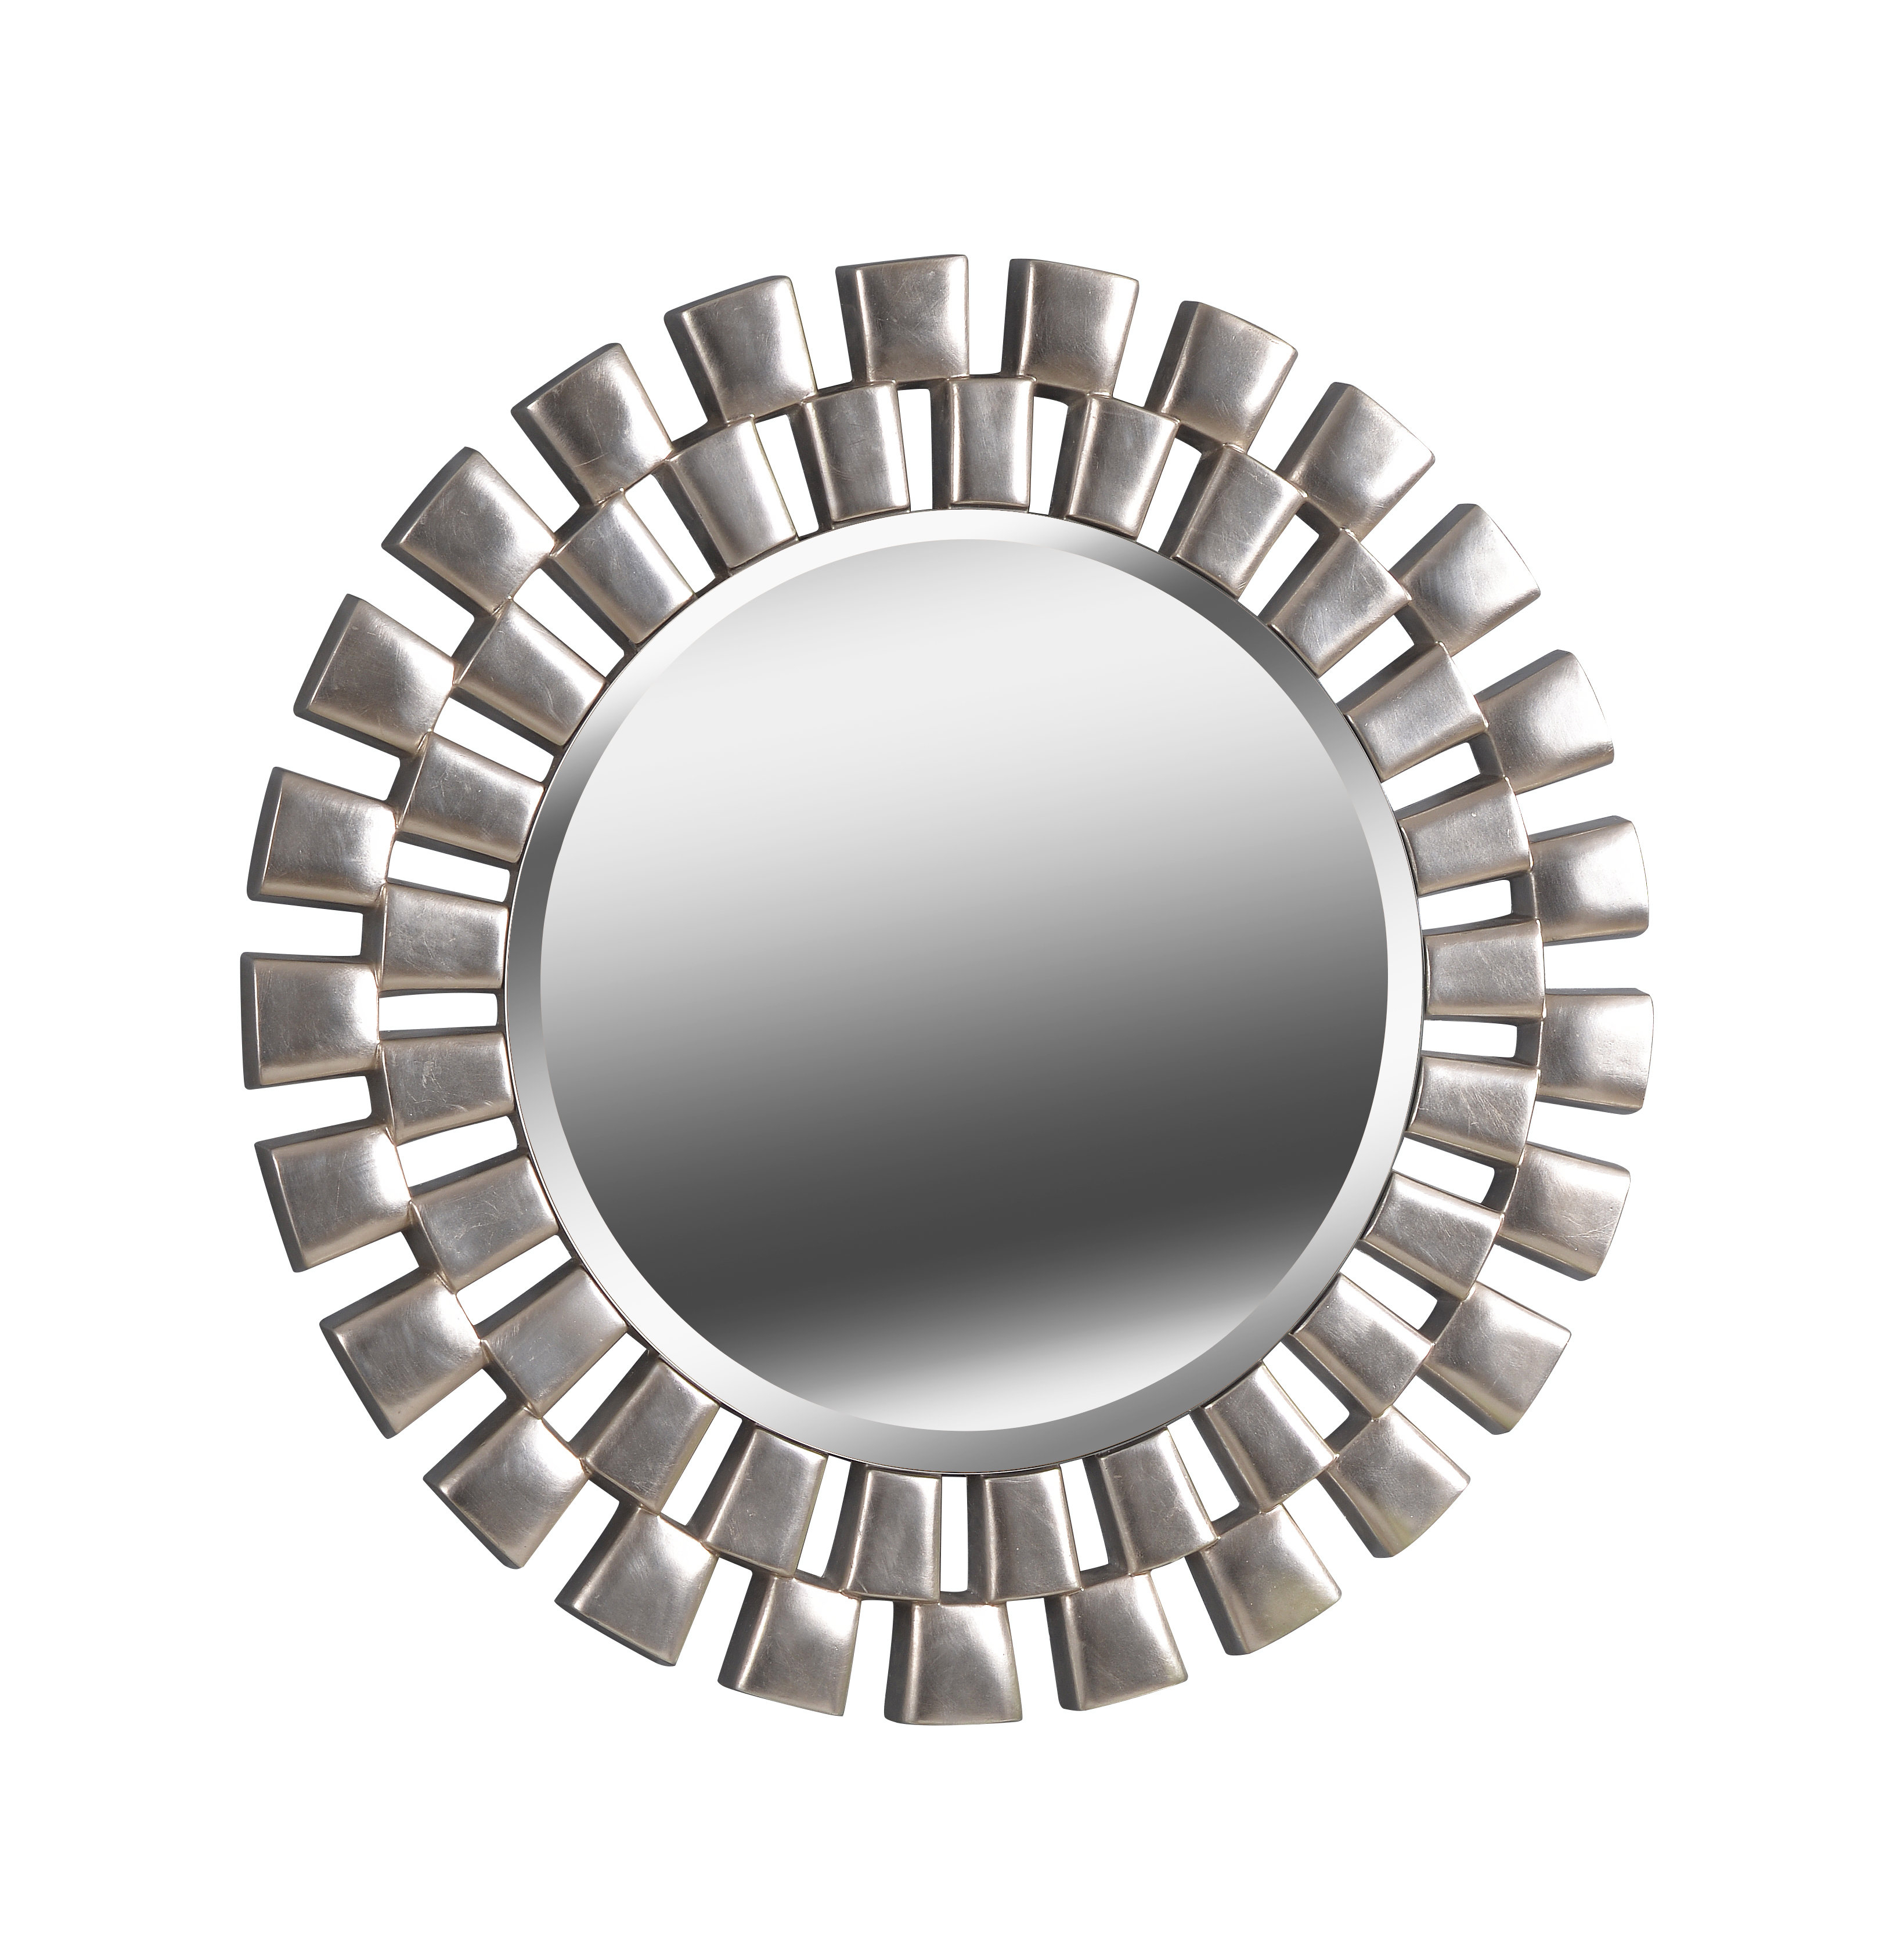 Glam Beveled Accent Mirror Intended For Trigg Accent Mirrors (View 13 of 30)